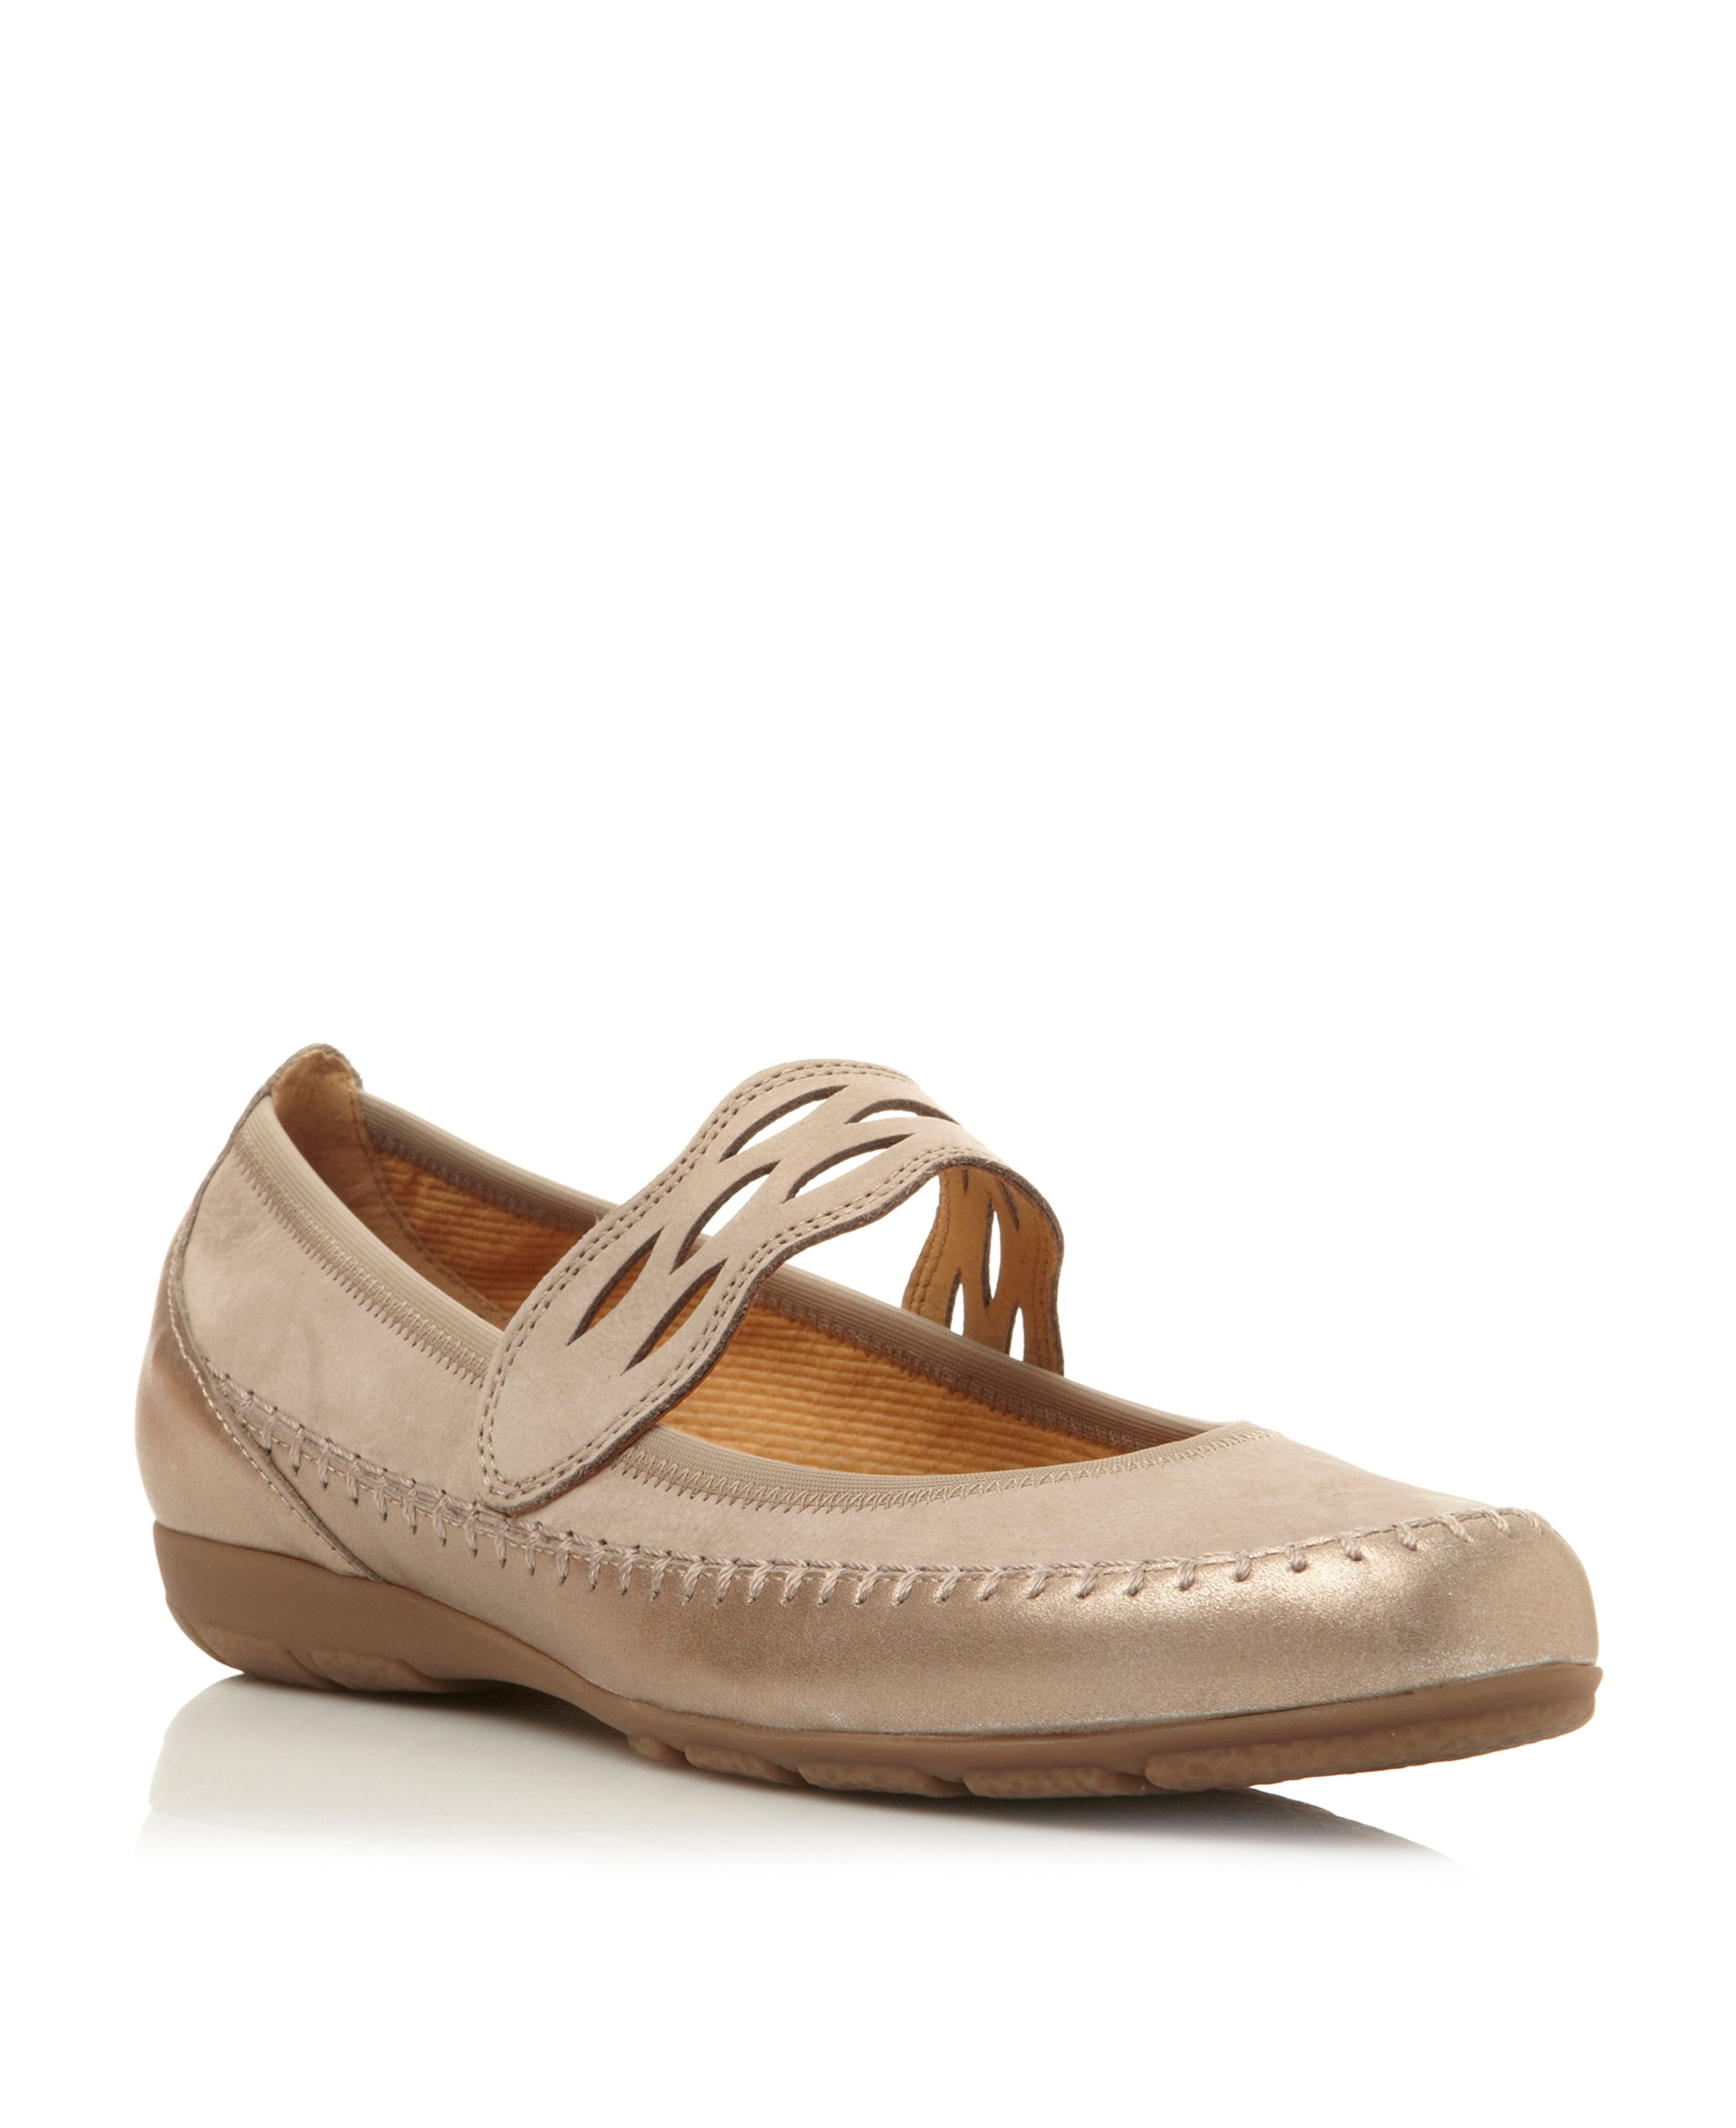 Frances leather round ballerina shoes